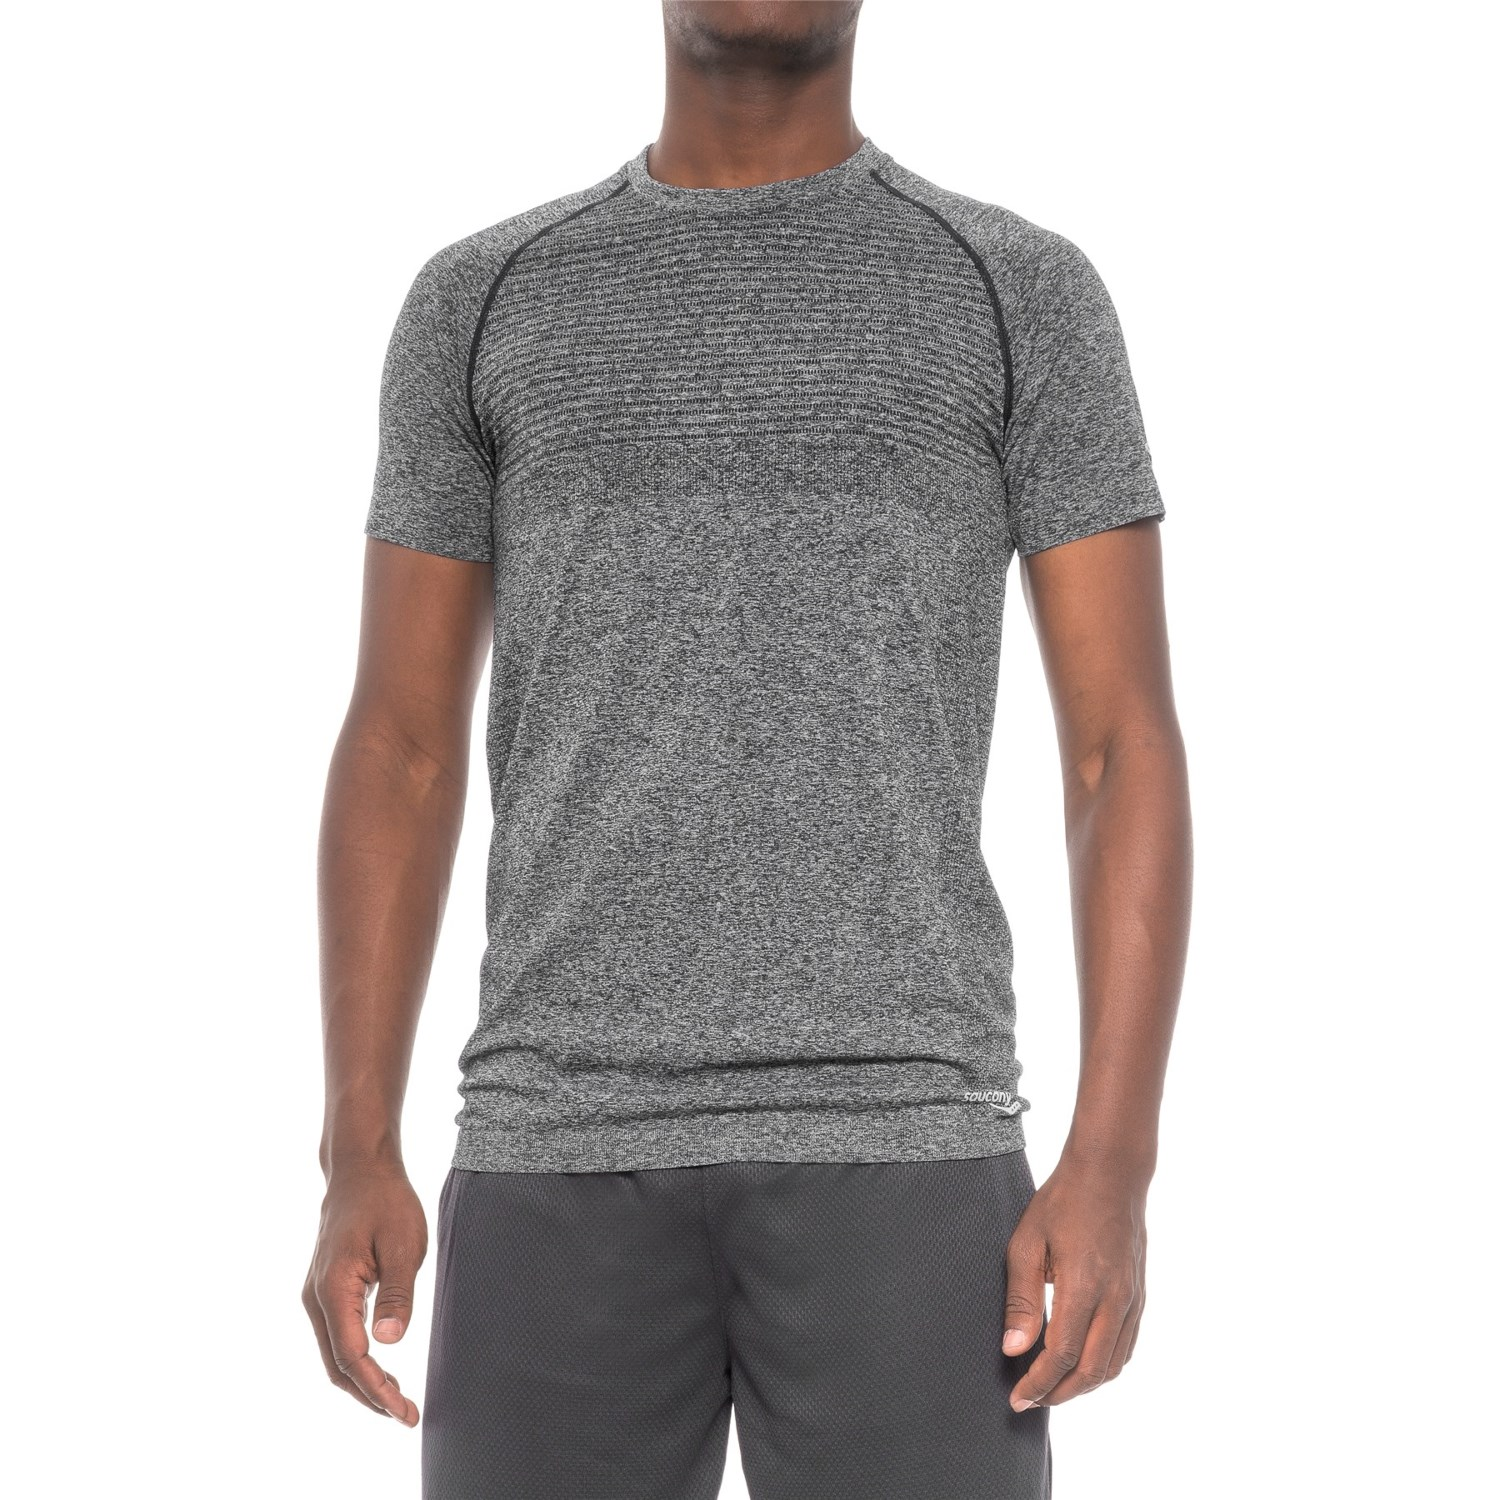 Saucony Active T-Shirt (For Men) - Save 40%